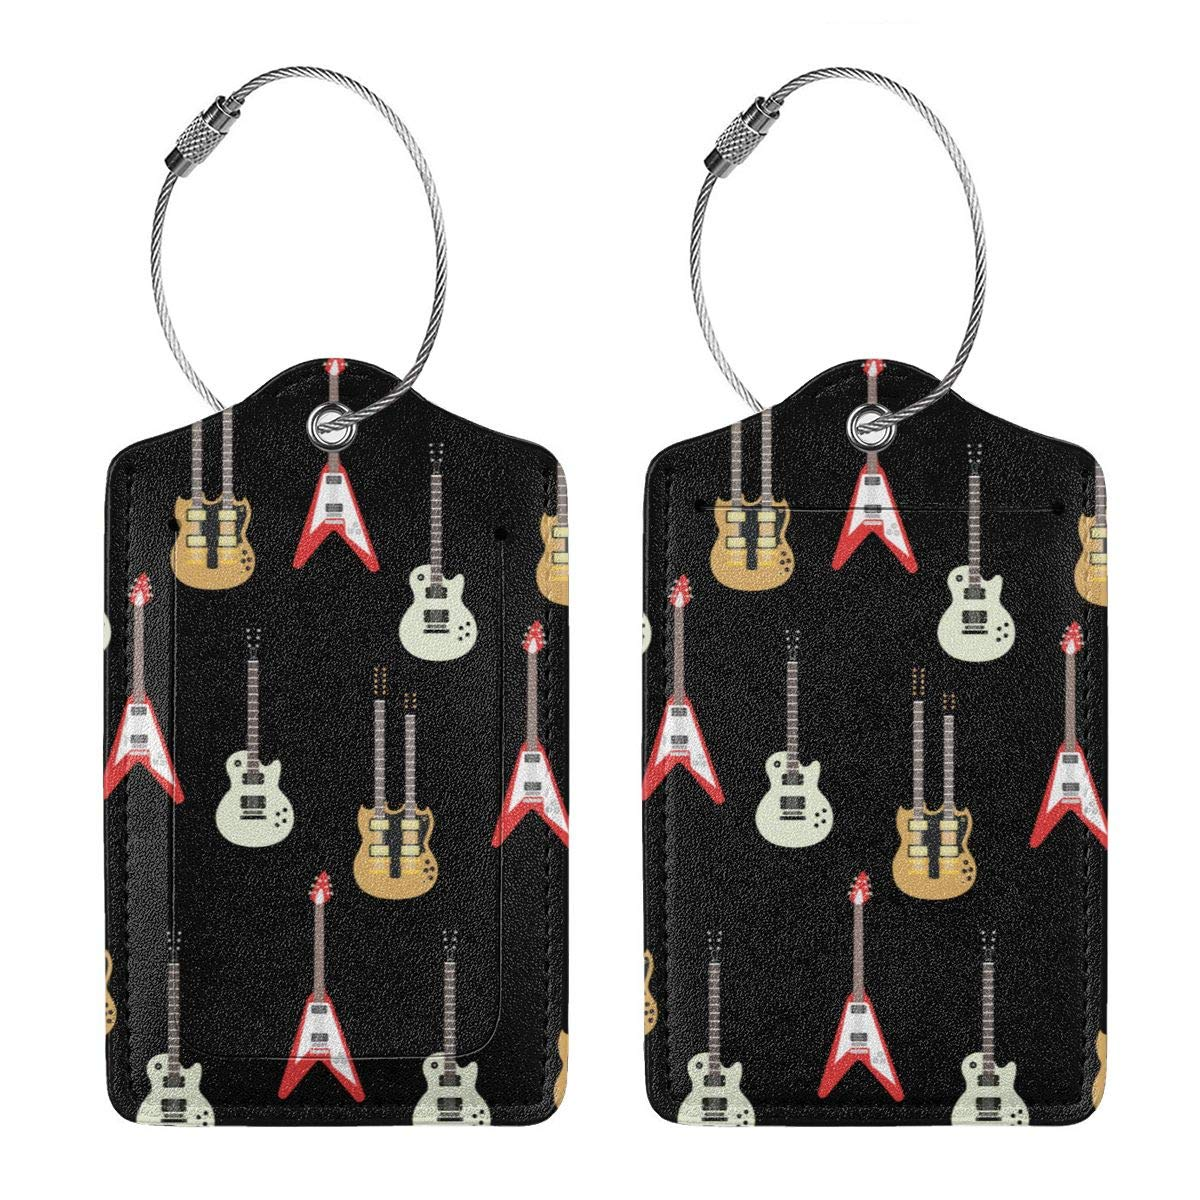 Color Guitar Leather Luggage Tags Baggage Bag Instrument Tag Travel Labels Accessories with Privacy Cover